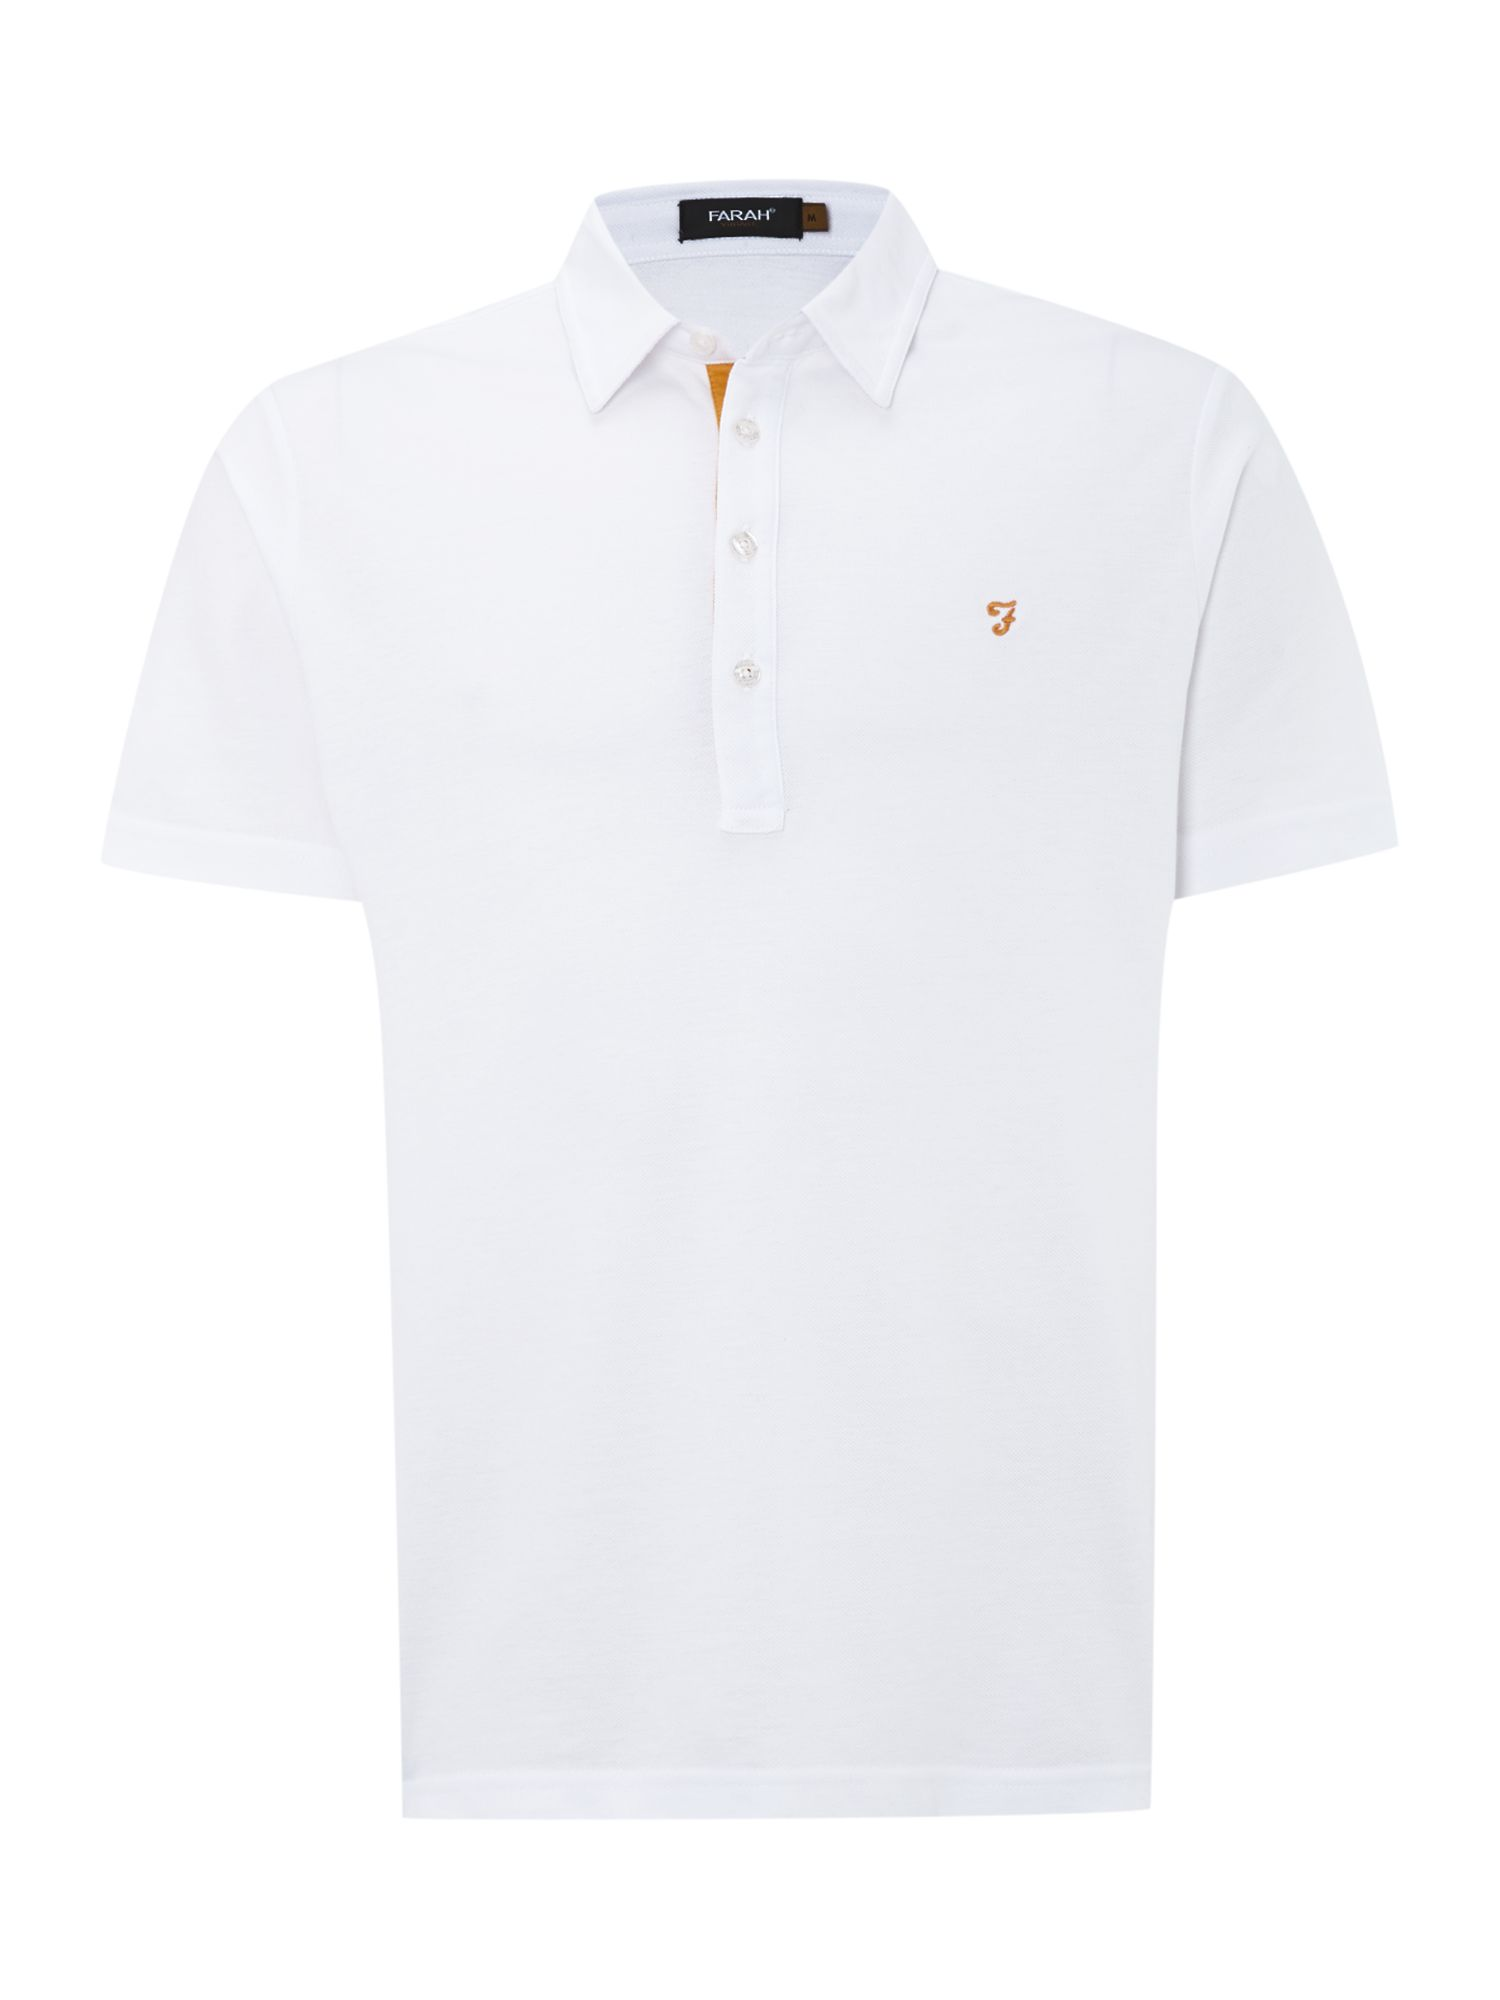 Hayden polo shirt